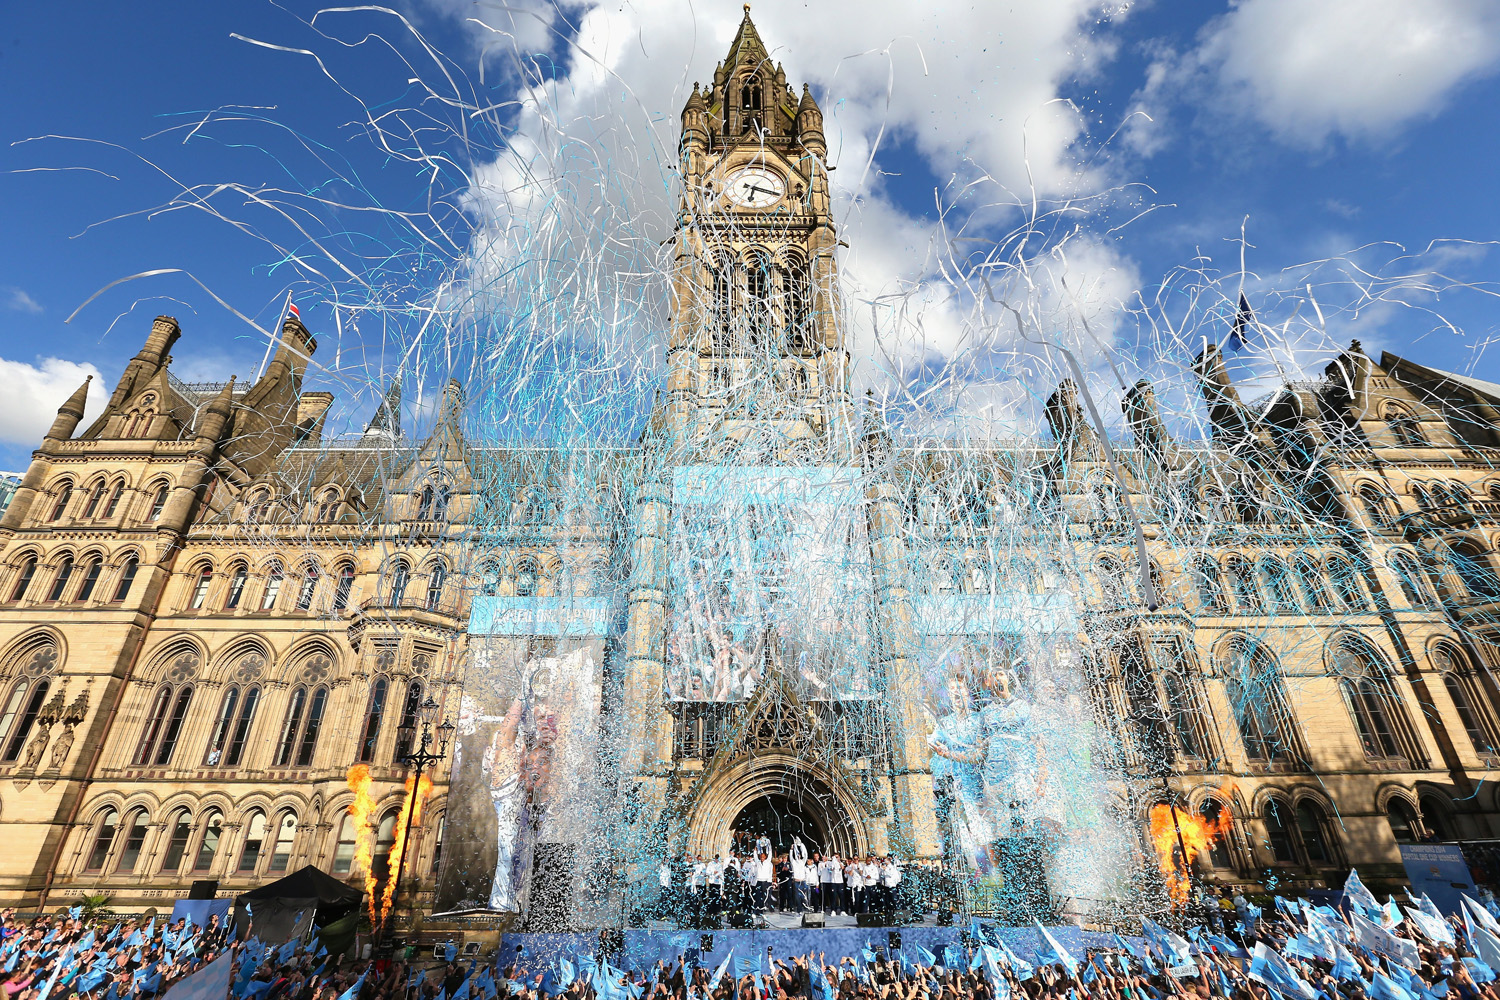 Vincent Kompany of Manchester City lifts the Barclays Premier League trophy aloft outside Manchester Town Hall at the start of the Manchester City victory parade on May 12, 2014 in Manchester, England.